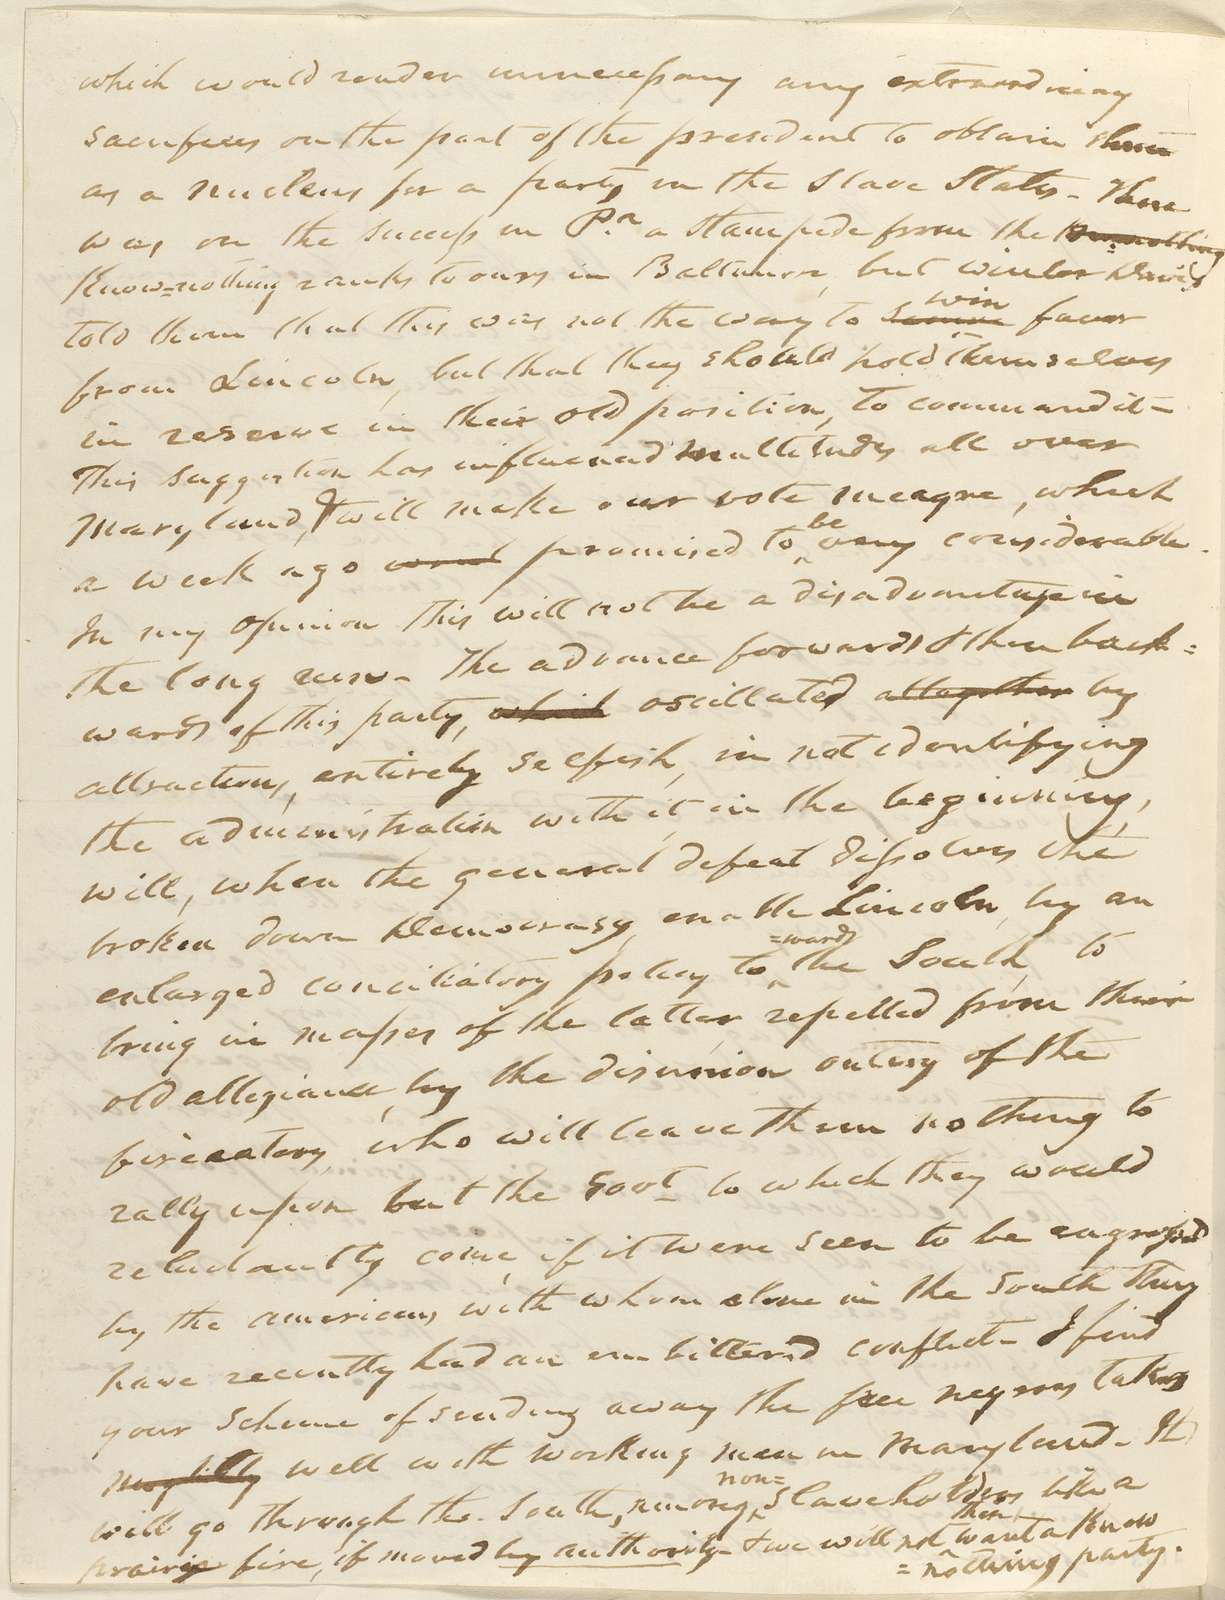 Abraham Lincoln papers: Series 1. General Correspondence. 1833-1916: Francis P. Blair Sr. to Francis P. Blair Jr., Saturday, October 27, 1860 (Cabinet appointments and other political affairs)